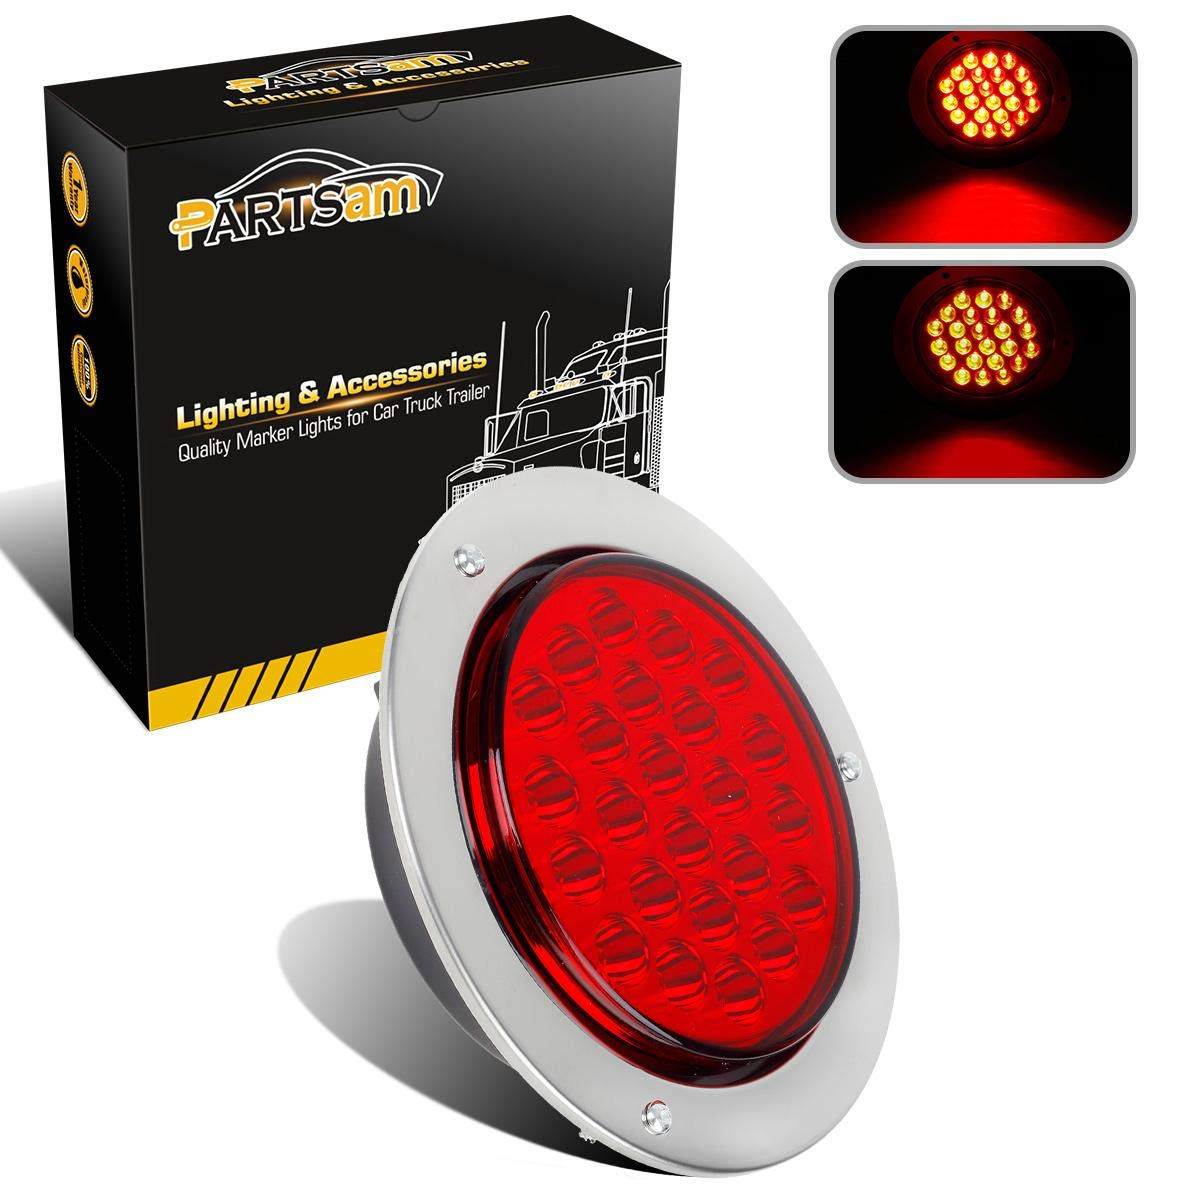 Partsam 2pcs 24-LED Red 4' Inch Round Tail Stop Turn Signal and Brake Marker Clearance Truck Trailer RV Lights Sealed Lamps Assembly w/Chrome Bezels Waterproof DOT Certified